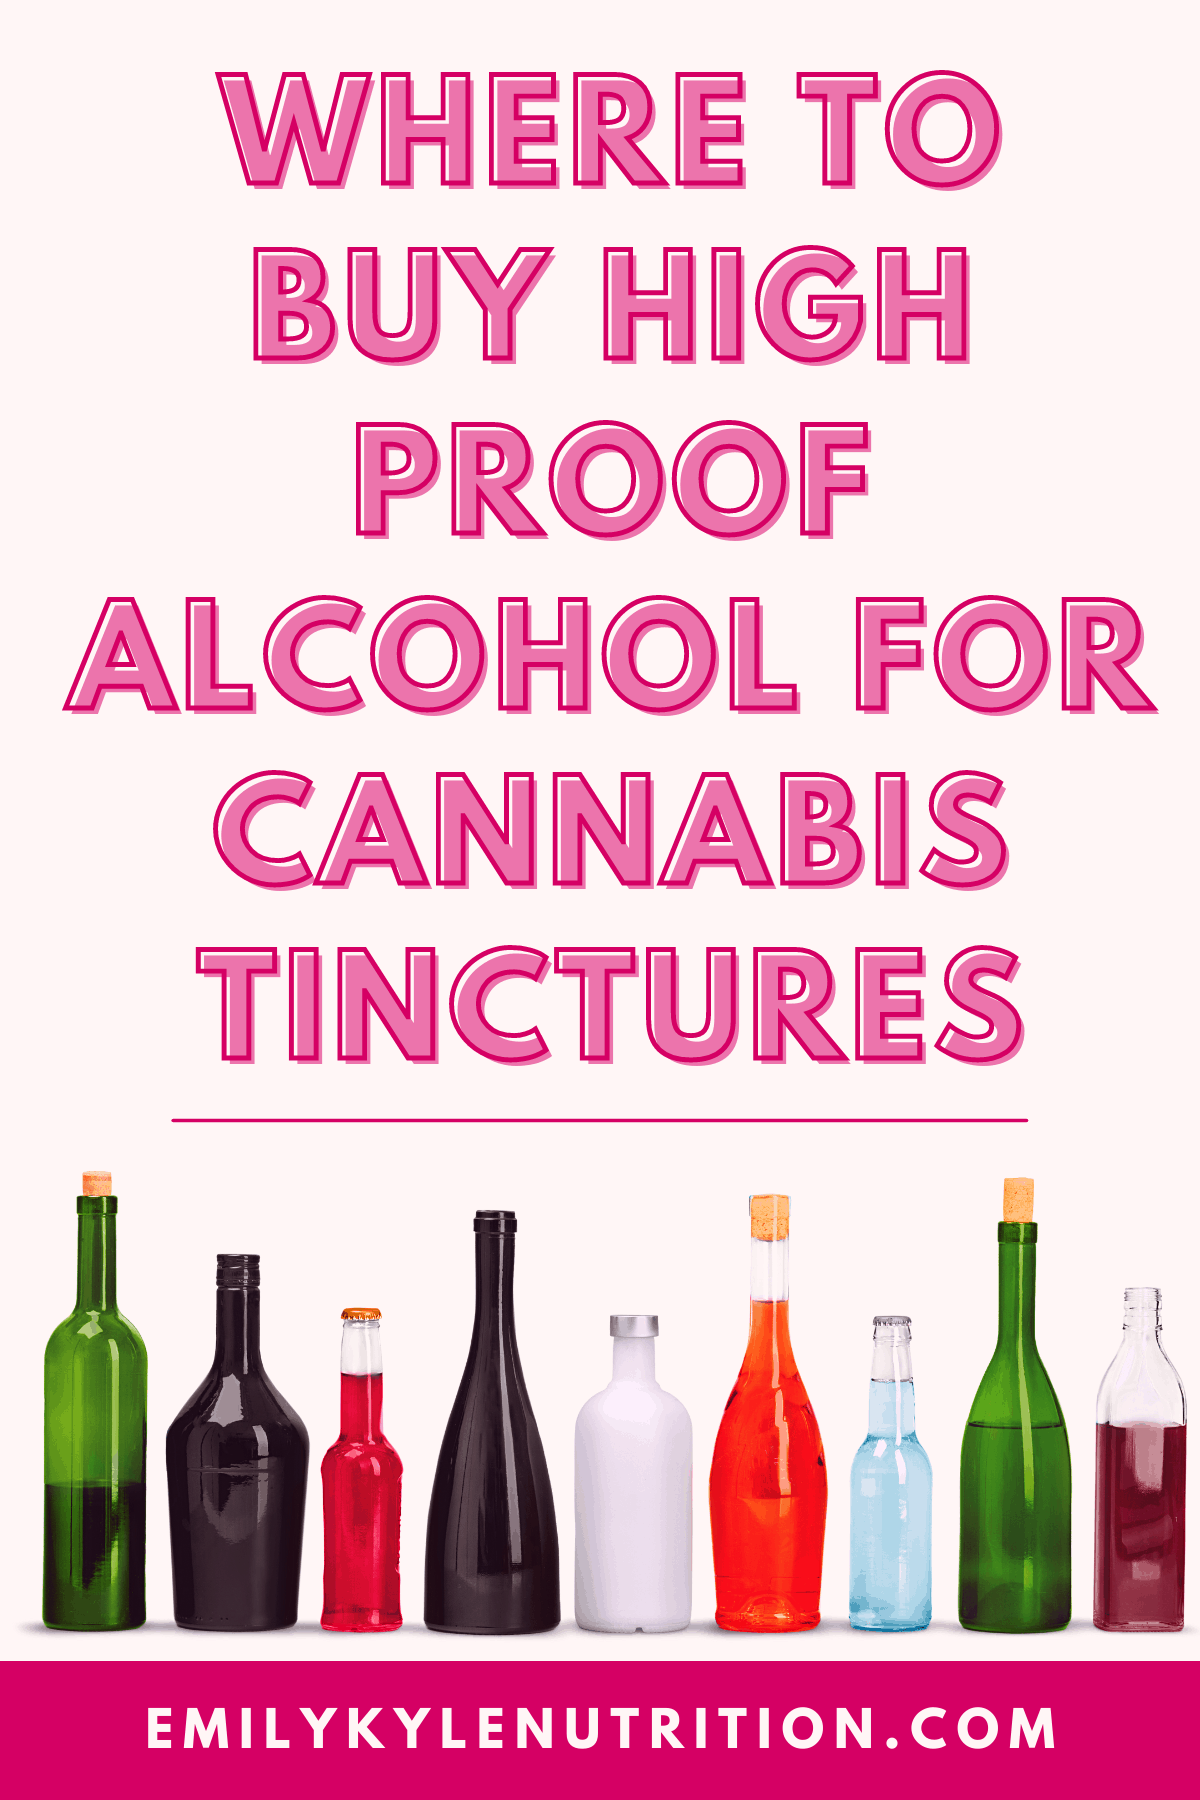 An image of alcohol bottles with the written words Where To Buy High Proof Alcohol For cannabis Tinctures